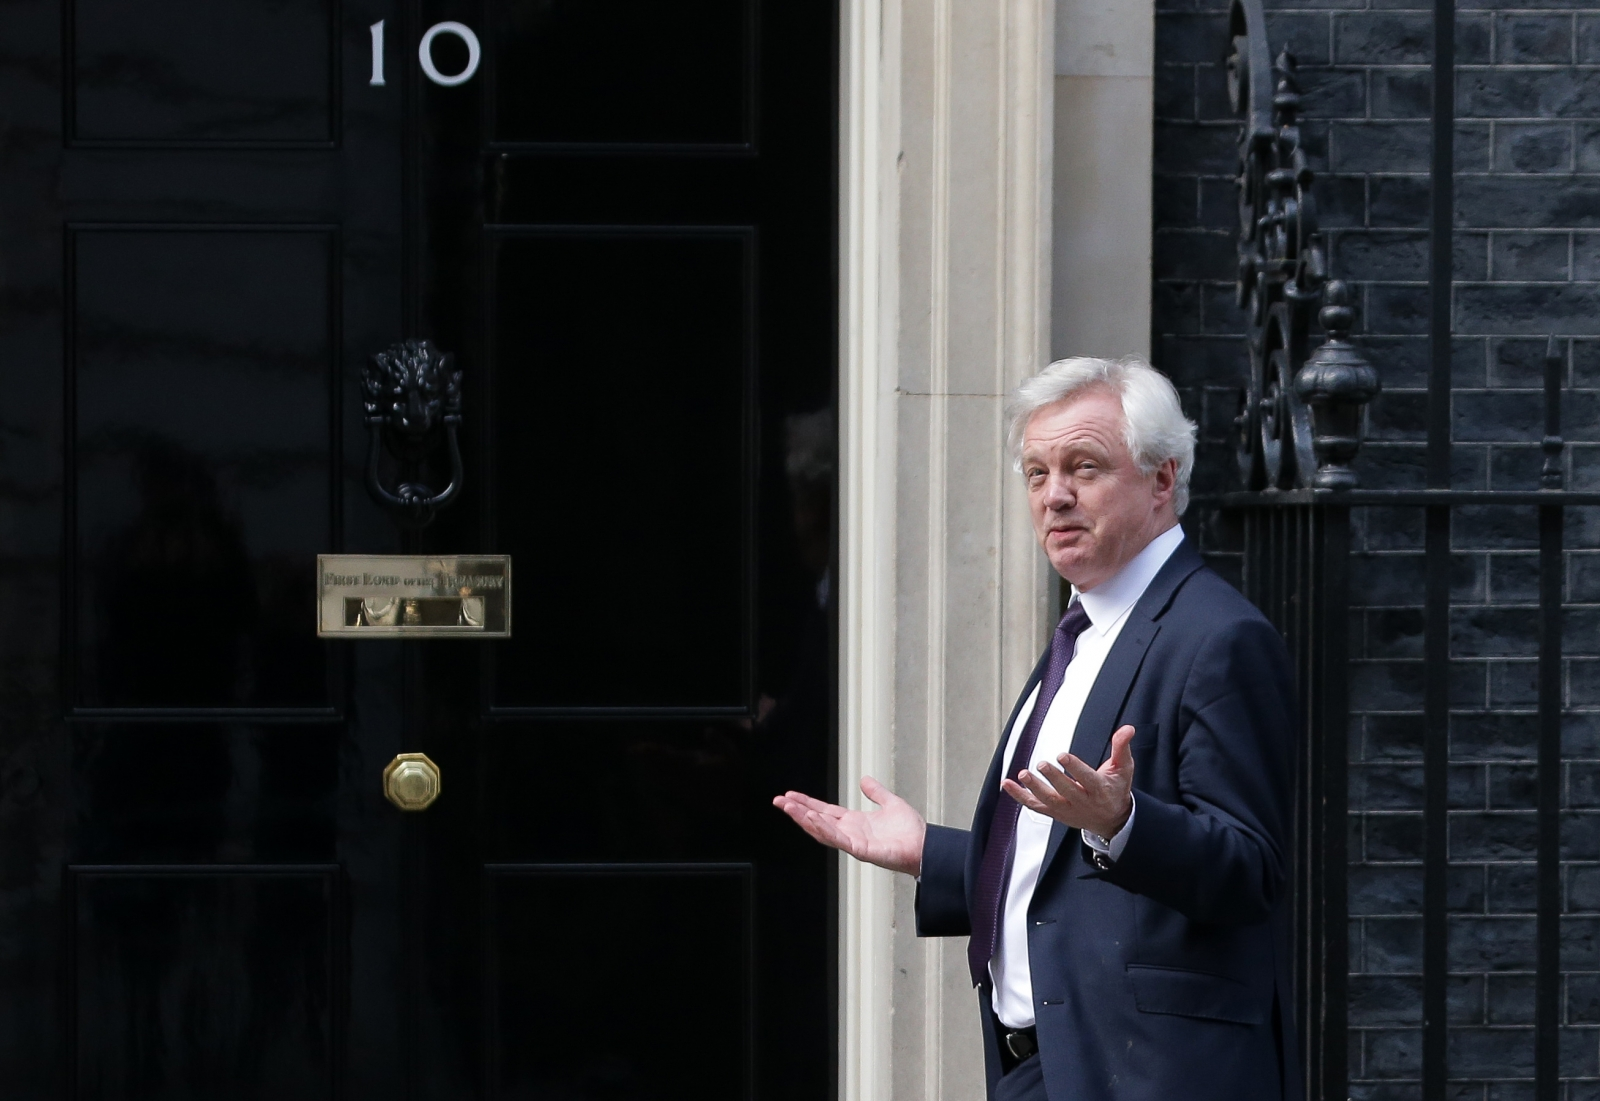 Does David Davis even know what the British government wants from the Brexit talks?